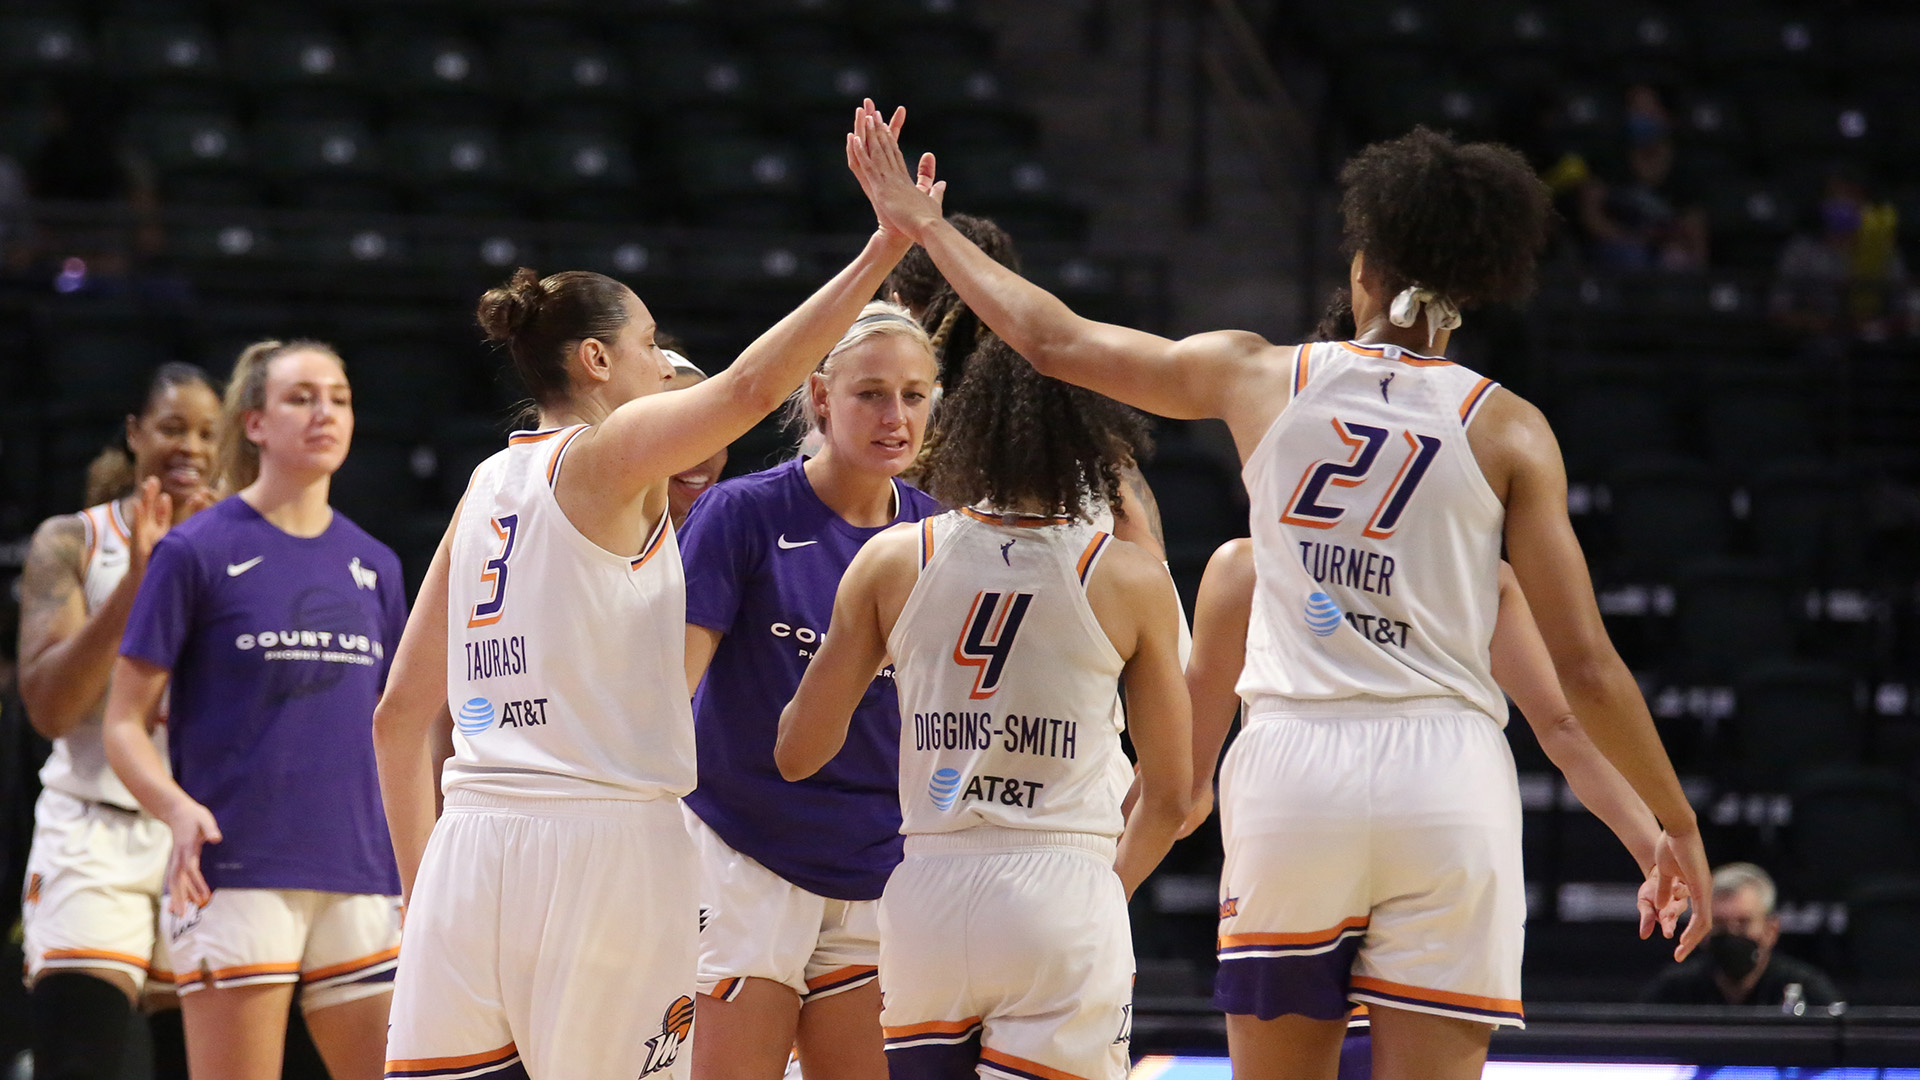 Moving on: Mercury, Sky secure spots in semifinals